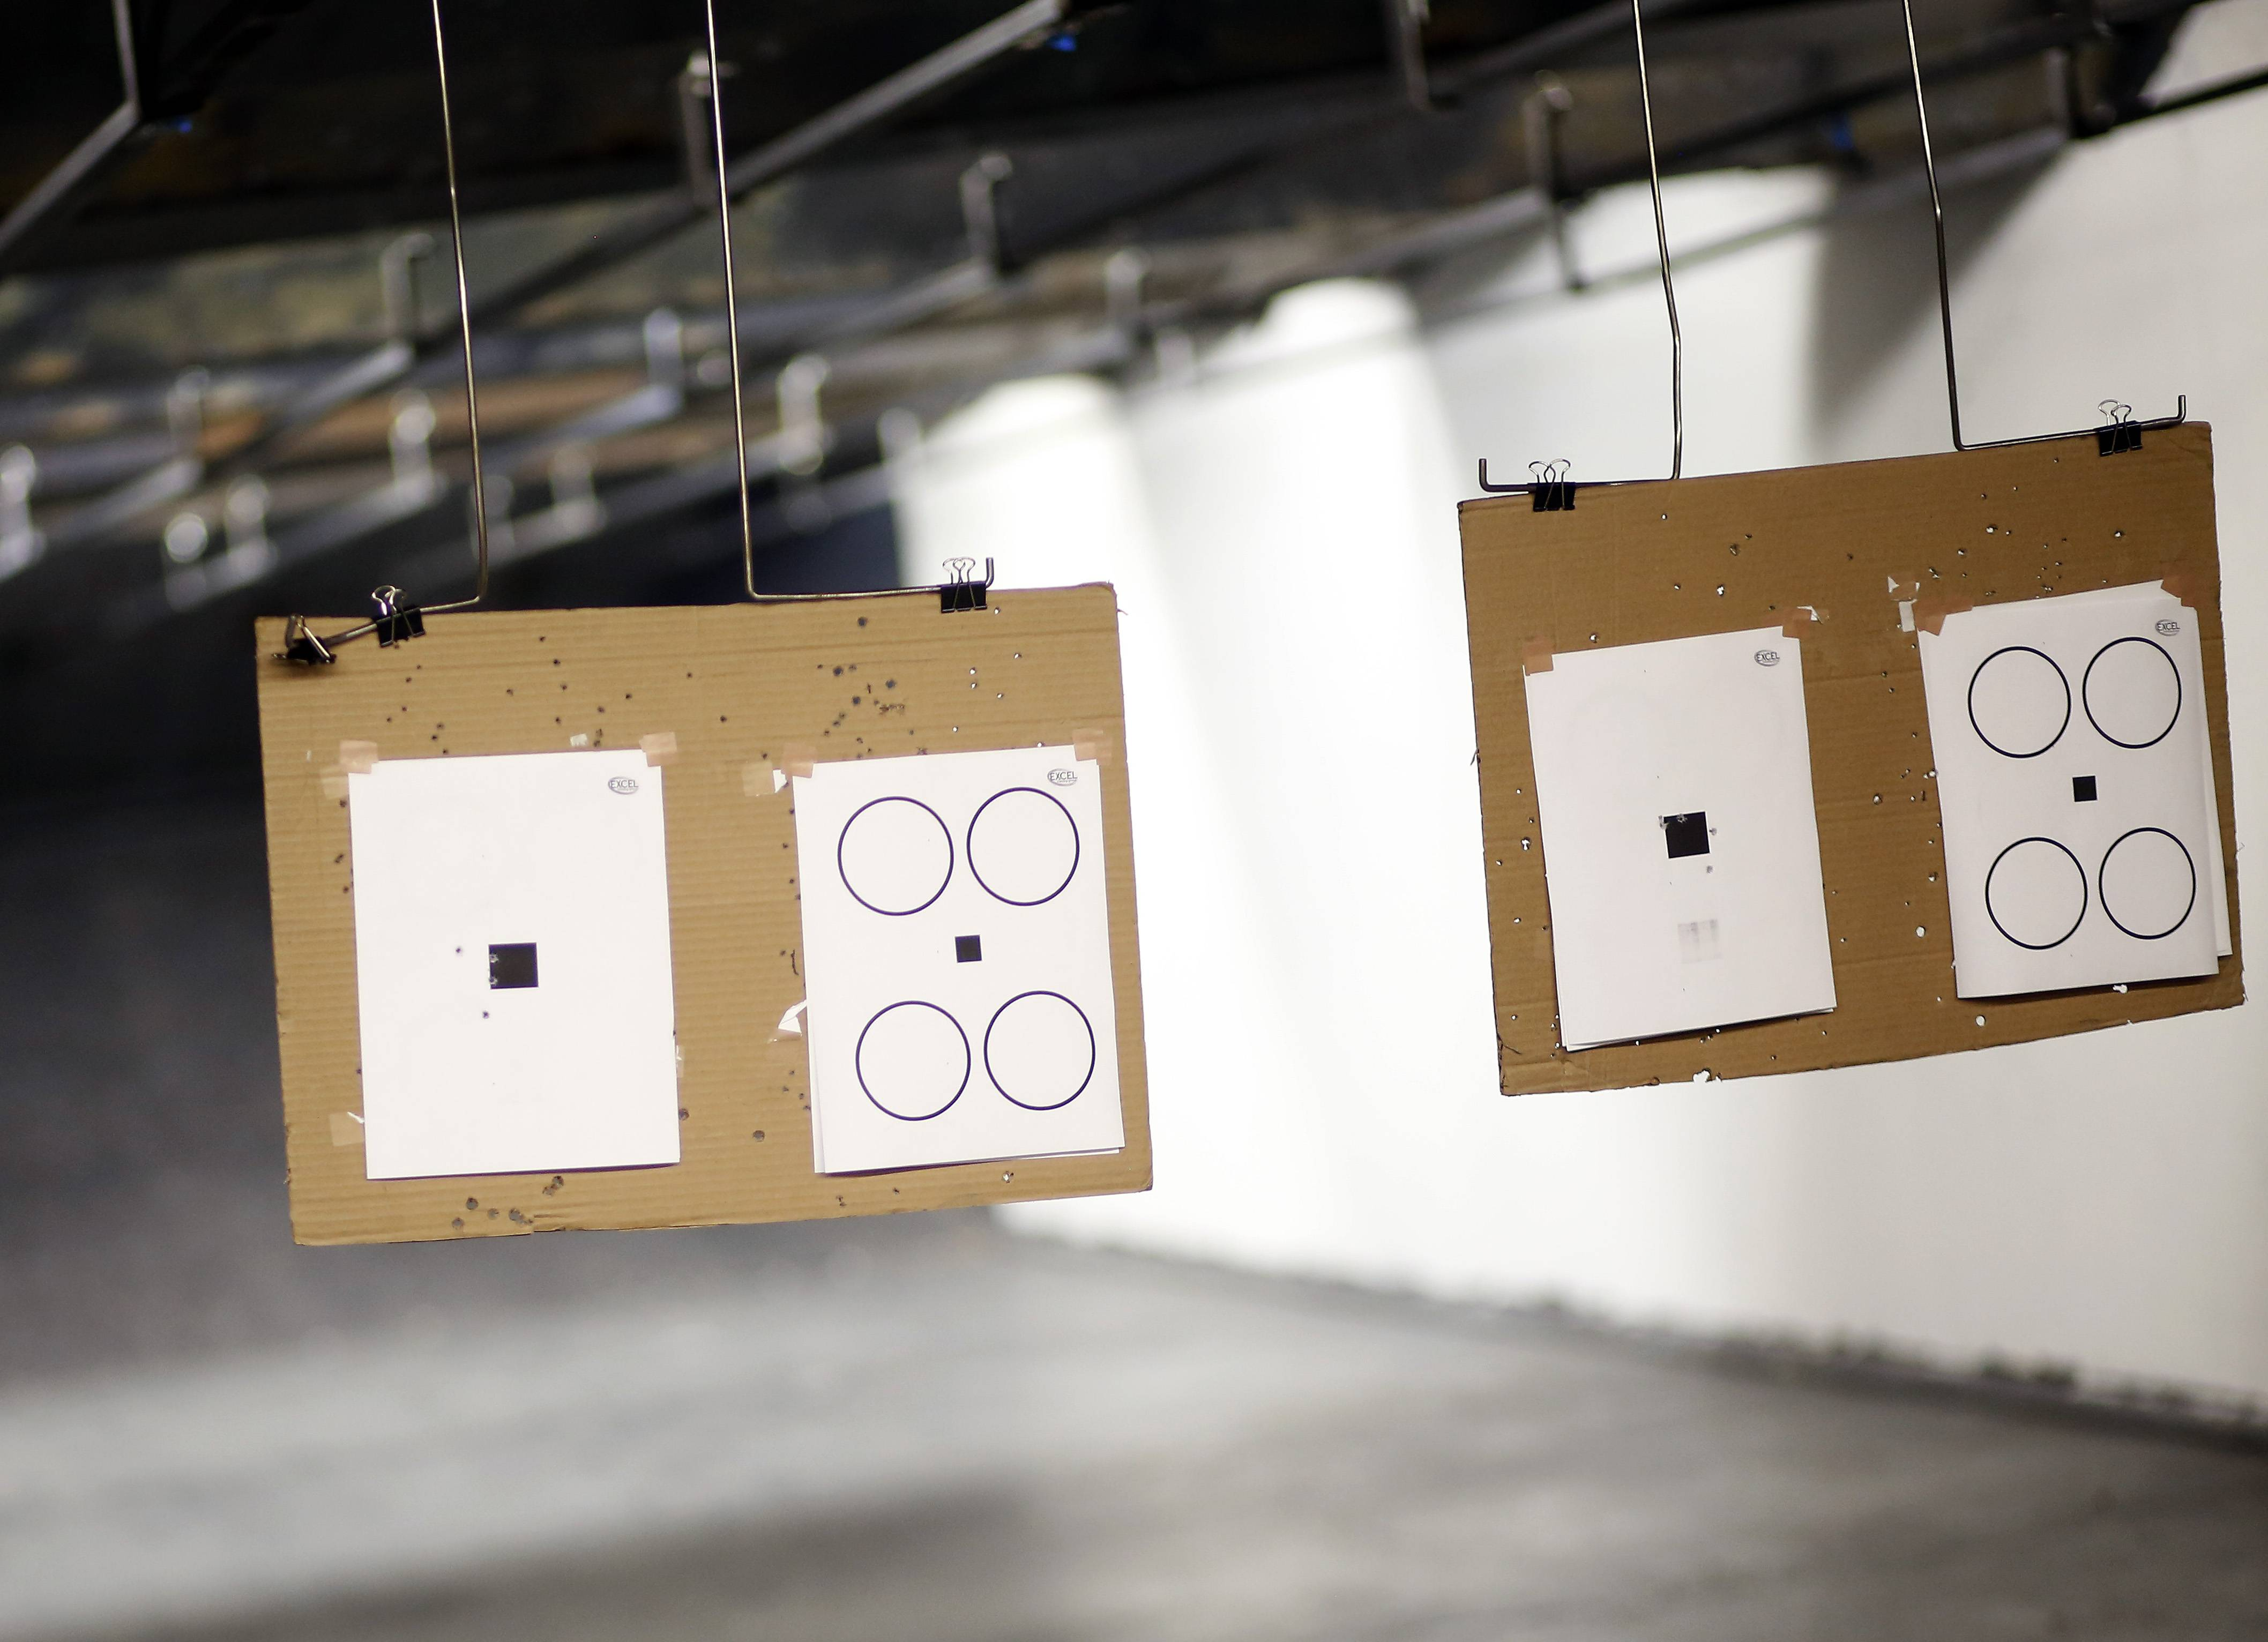 Firearms classes use various targets and .22-caliber Ruger handguns, according to TD Roe, an instructor and competitor.